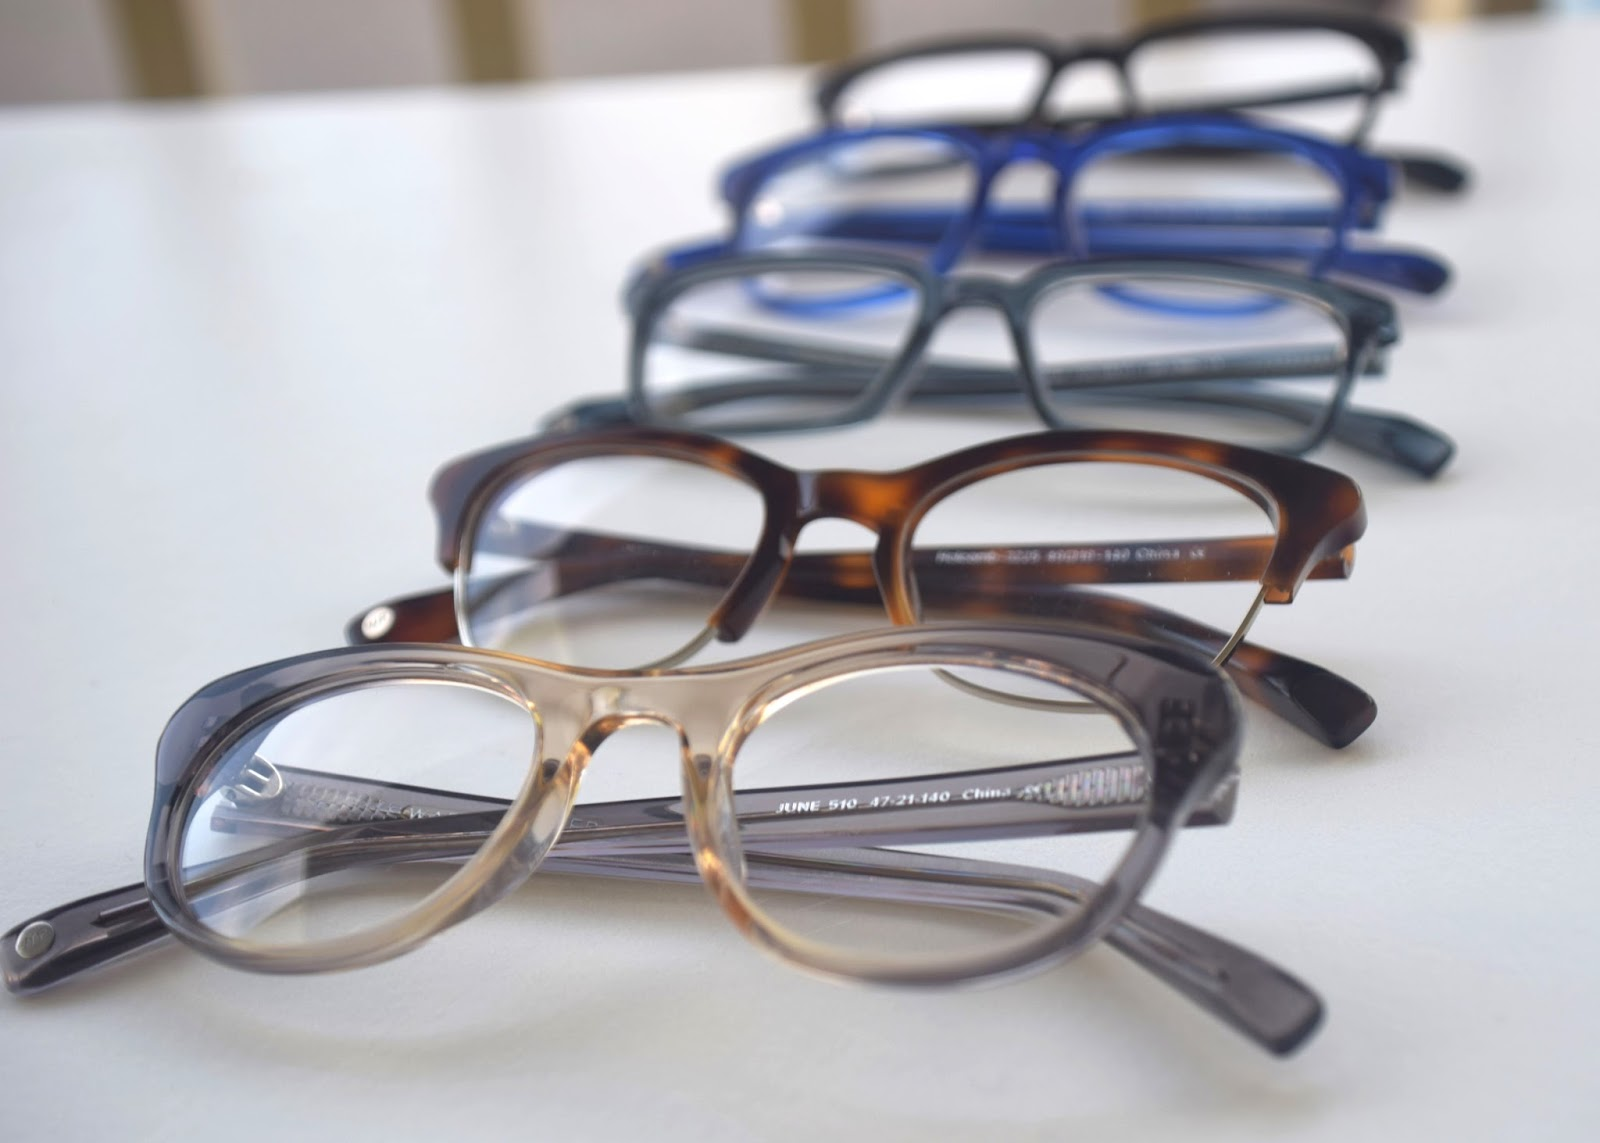 Warby Parker Home Try-On glasses